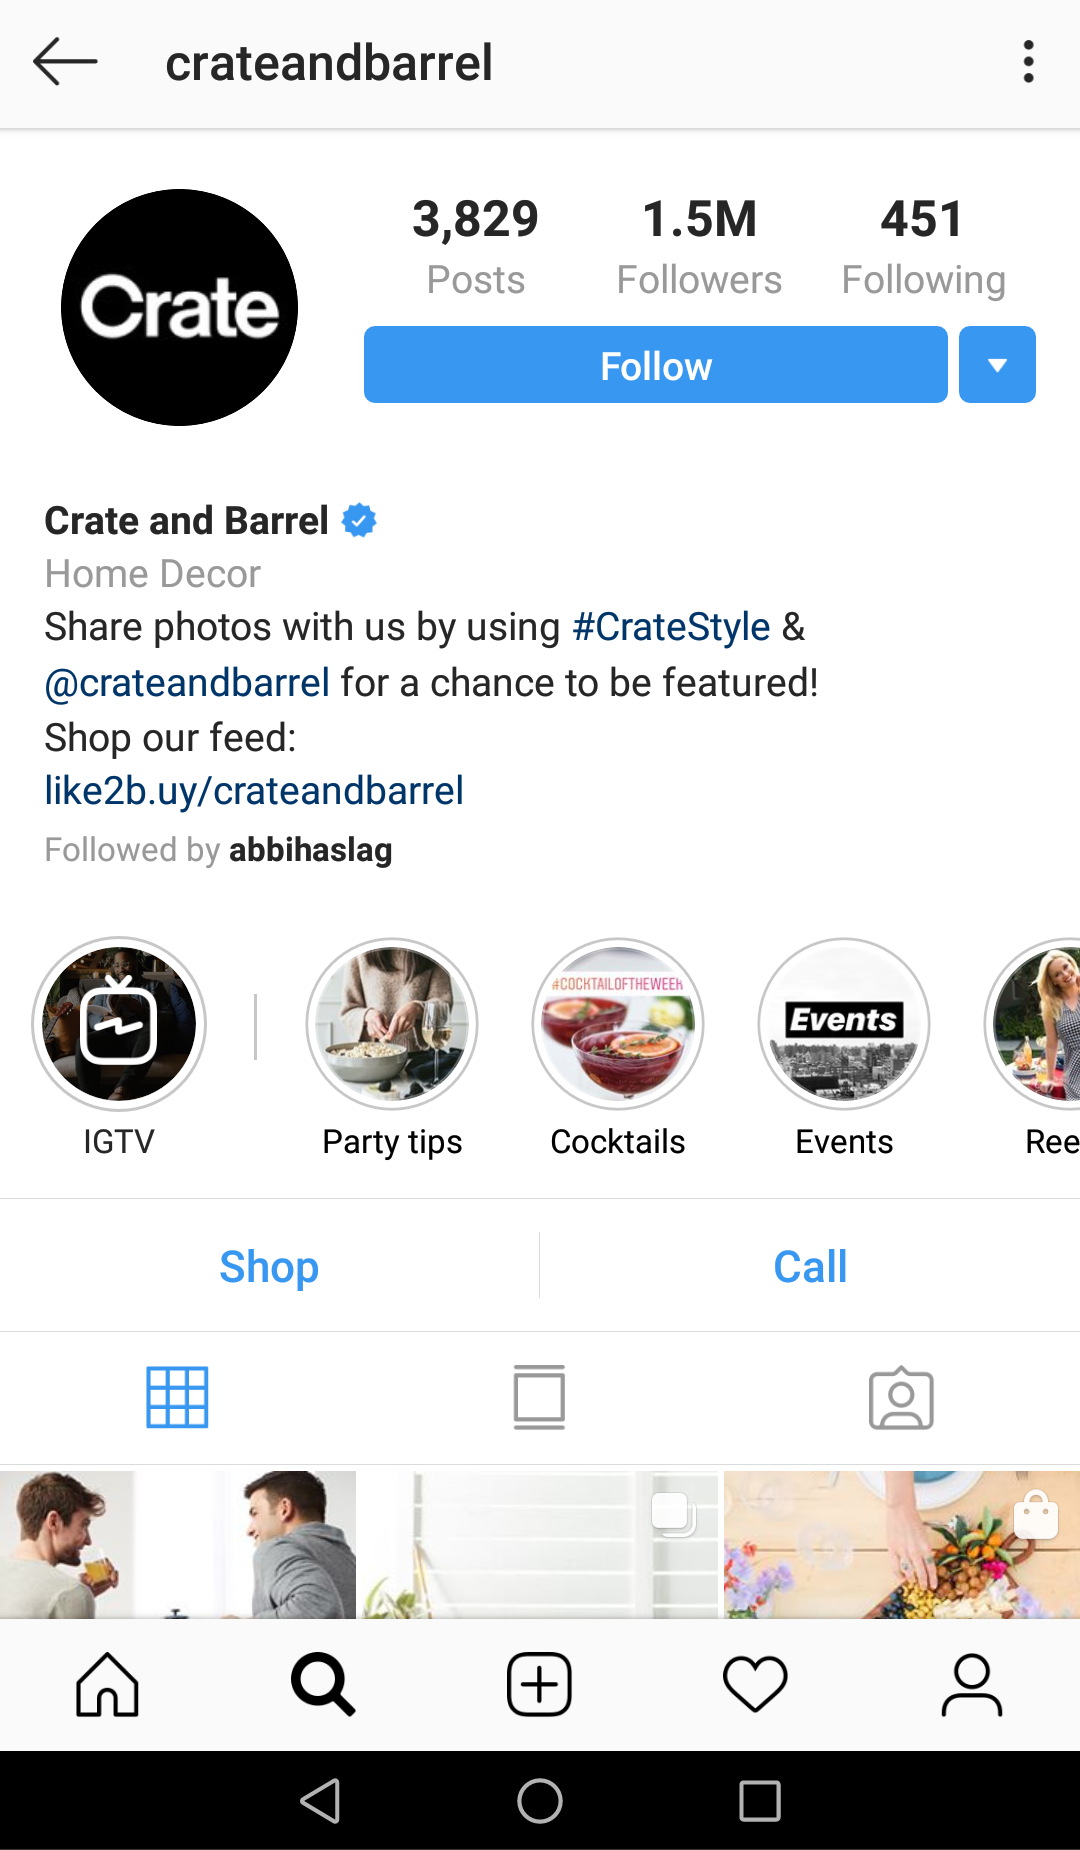 Retailers use their Instagram bios to drive business